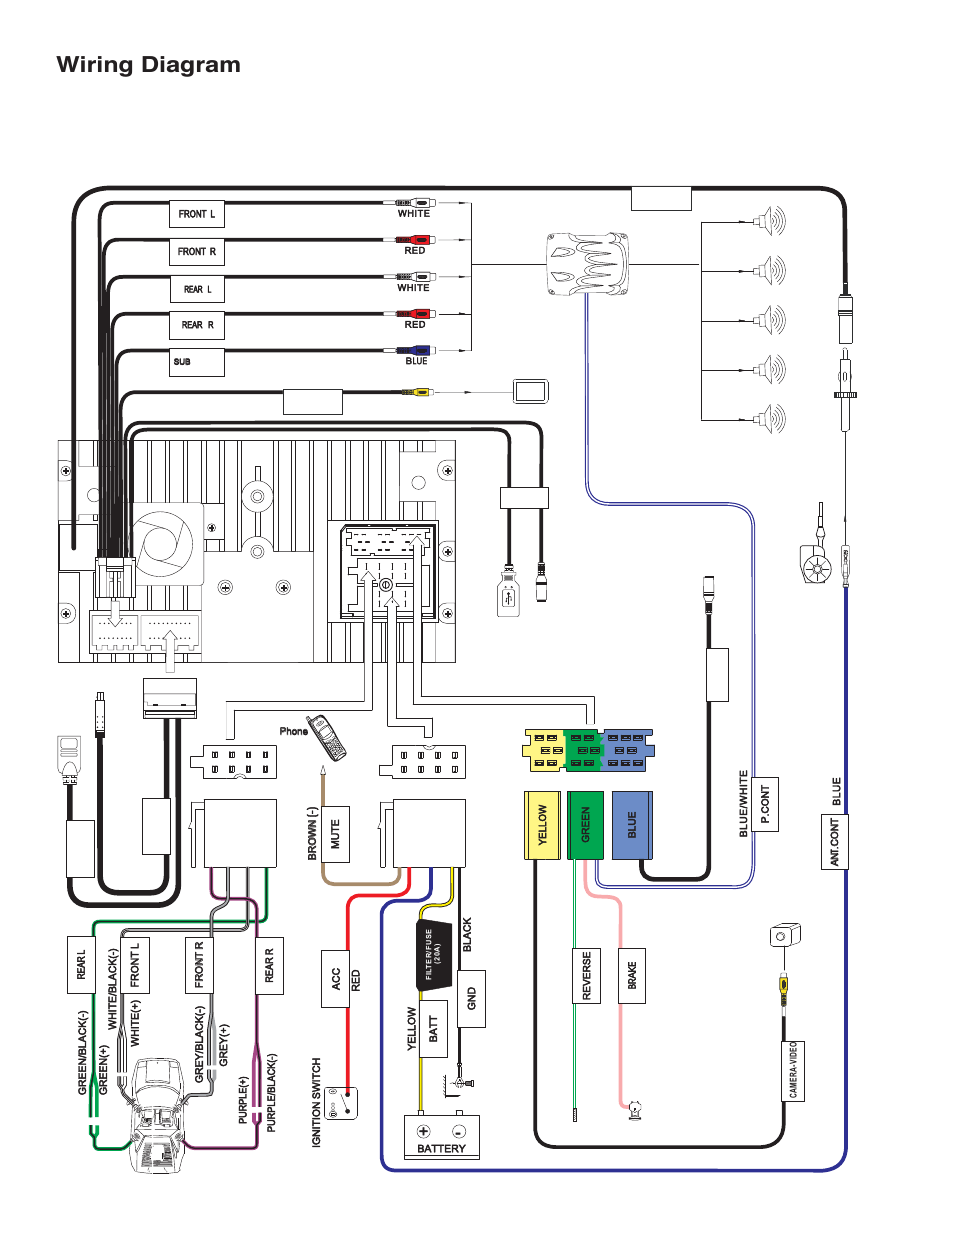 hight resolution of source viper 5900 wiring diagram